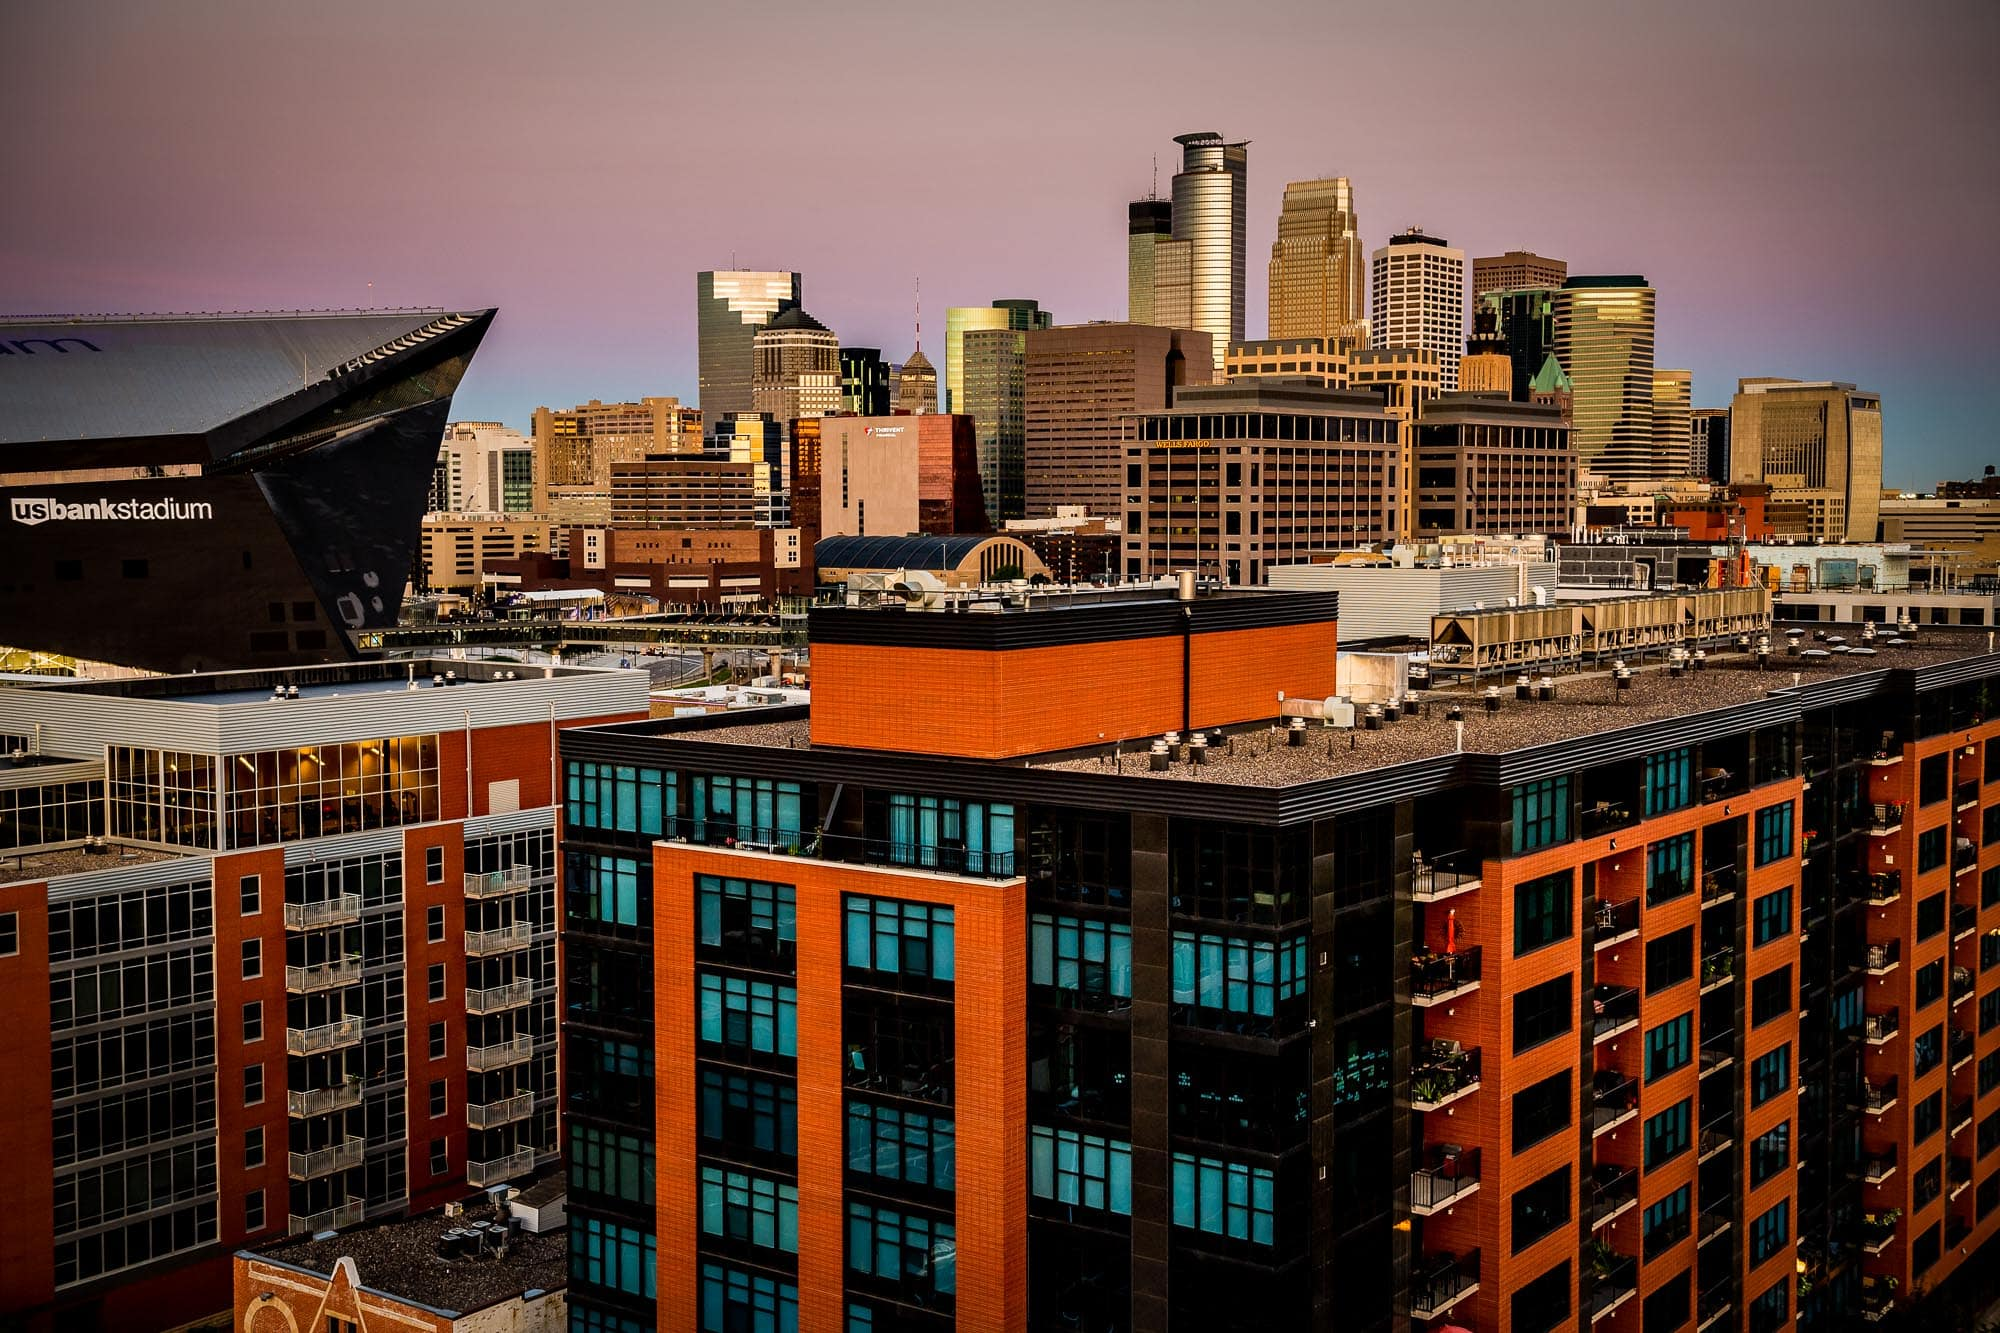 Commercial photo from the roof of Stonebridge Condos overlooking downtown Minneapolis